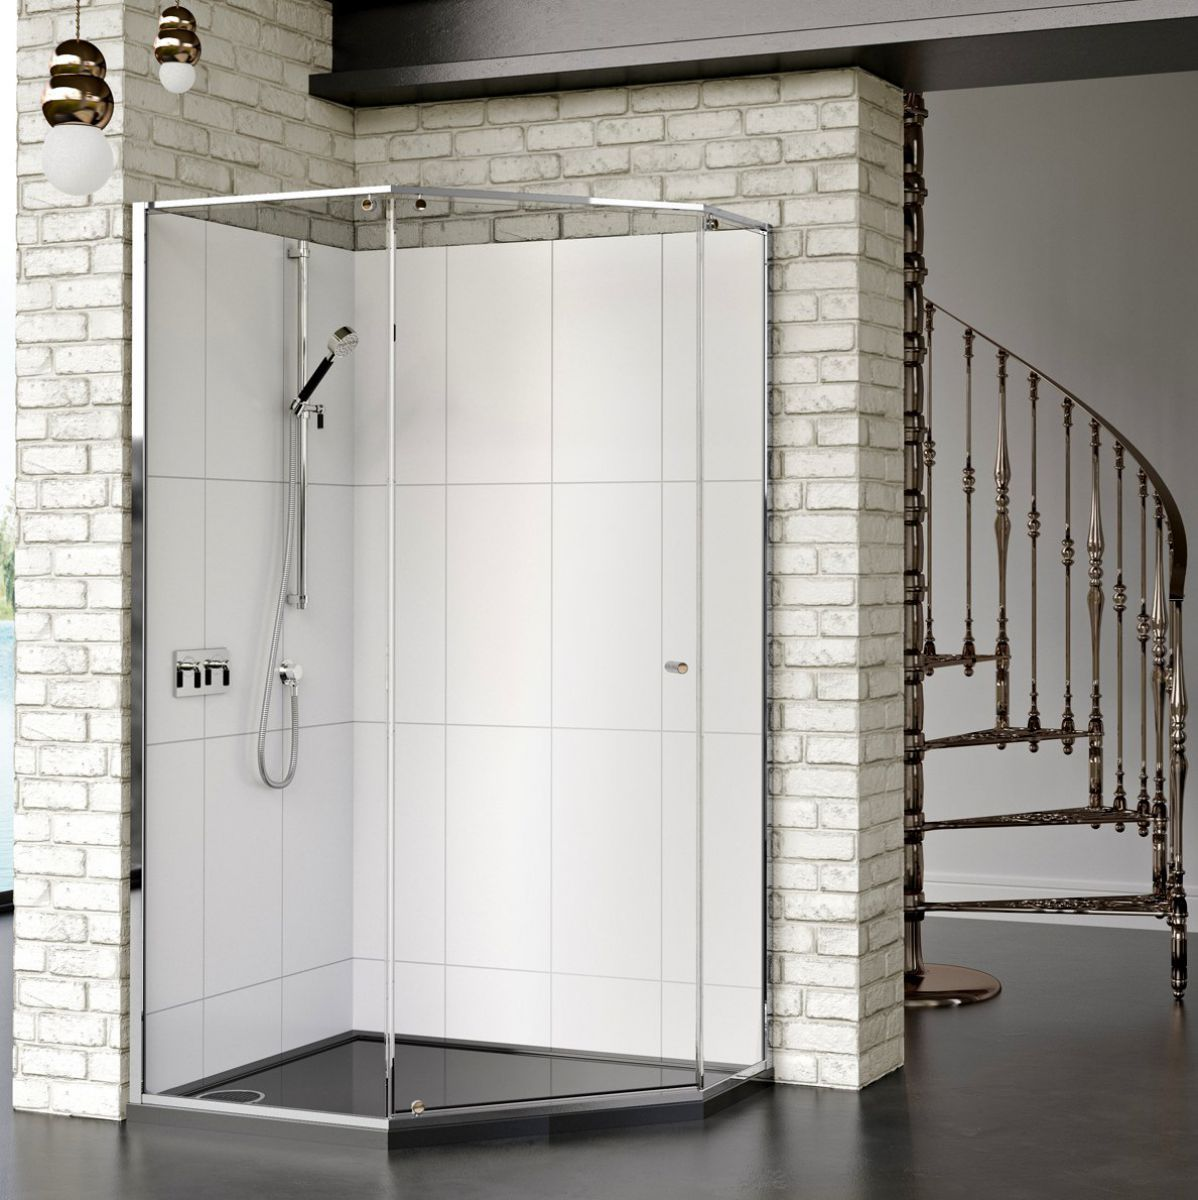 Bathroom And Showers Direct: Matki-ONE Quintesse Shower Enclosure